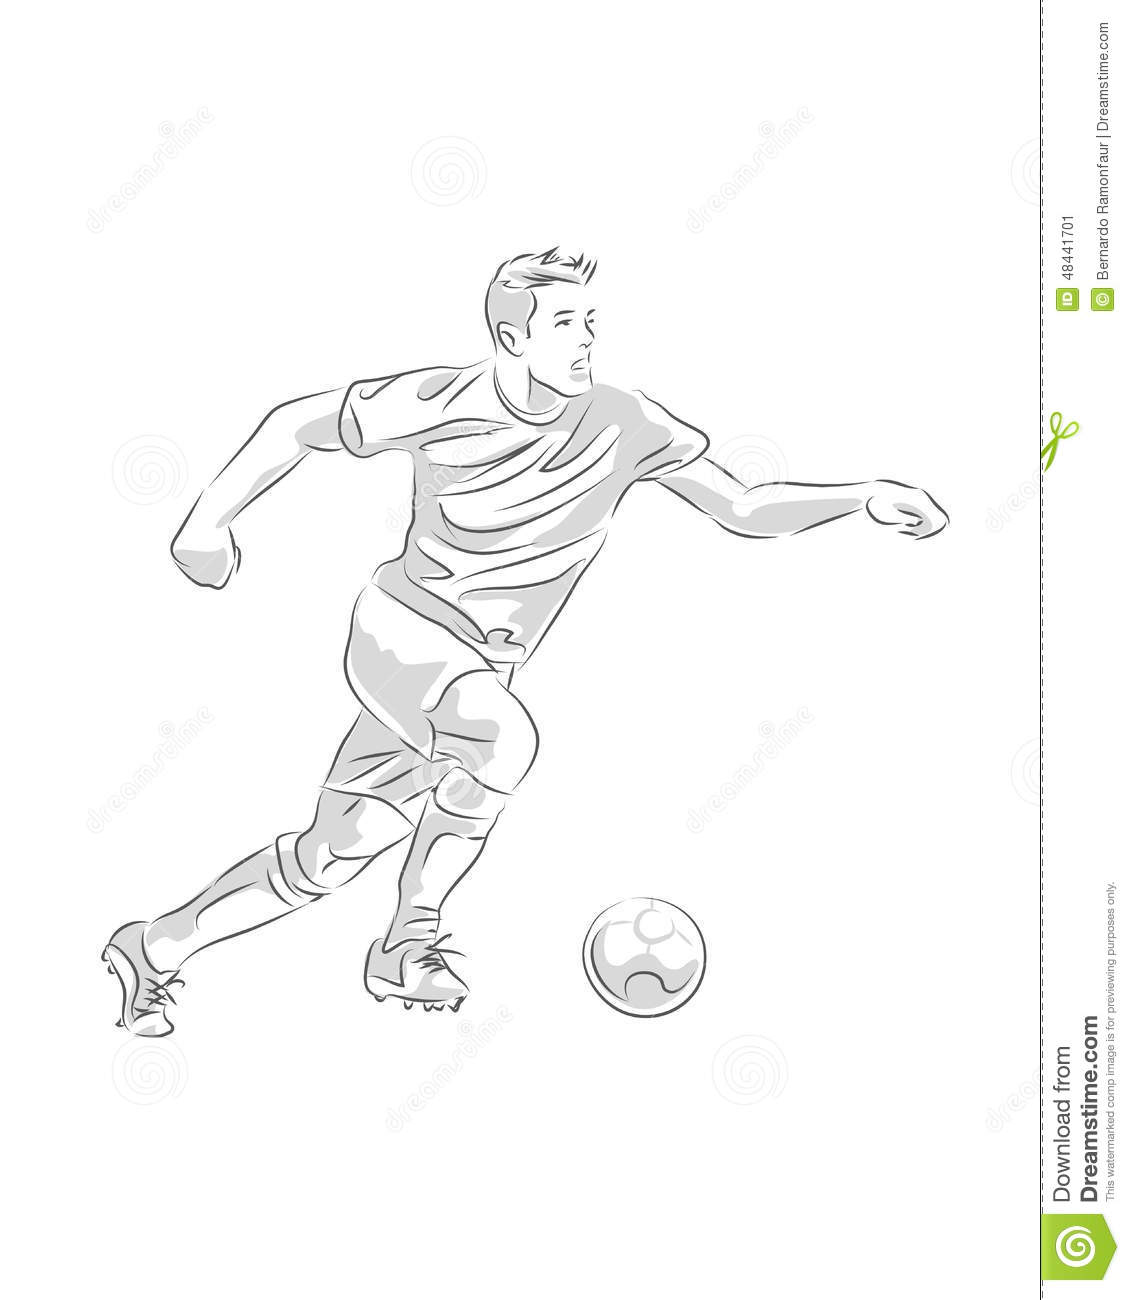 This is a picture of Ambitious Drawing Soccer Players